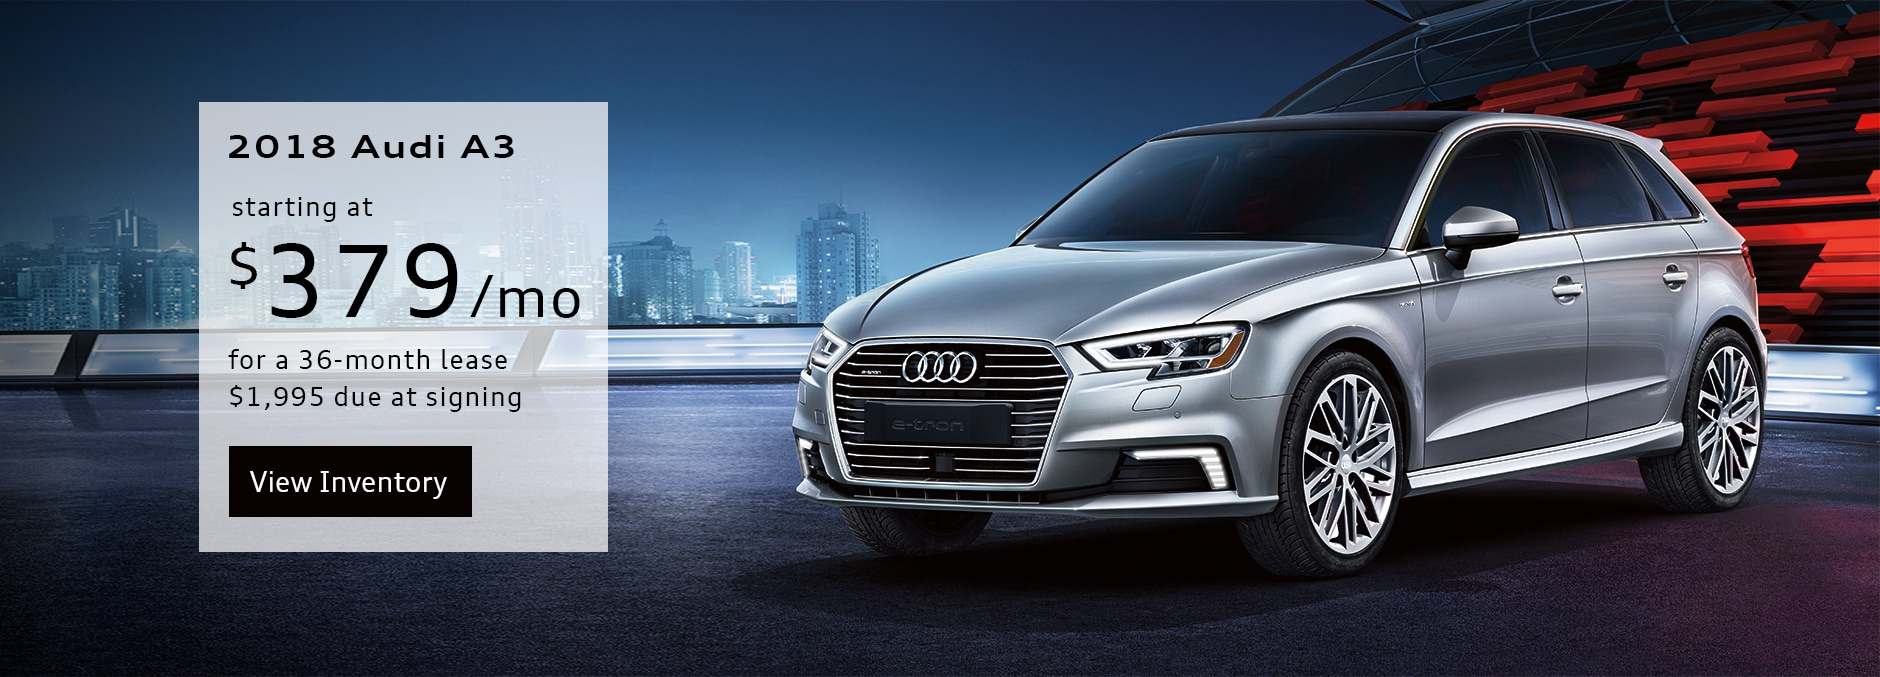 dealership new offers specials ny audi island in htm lease long neck great